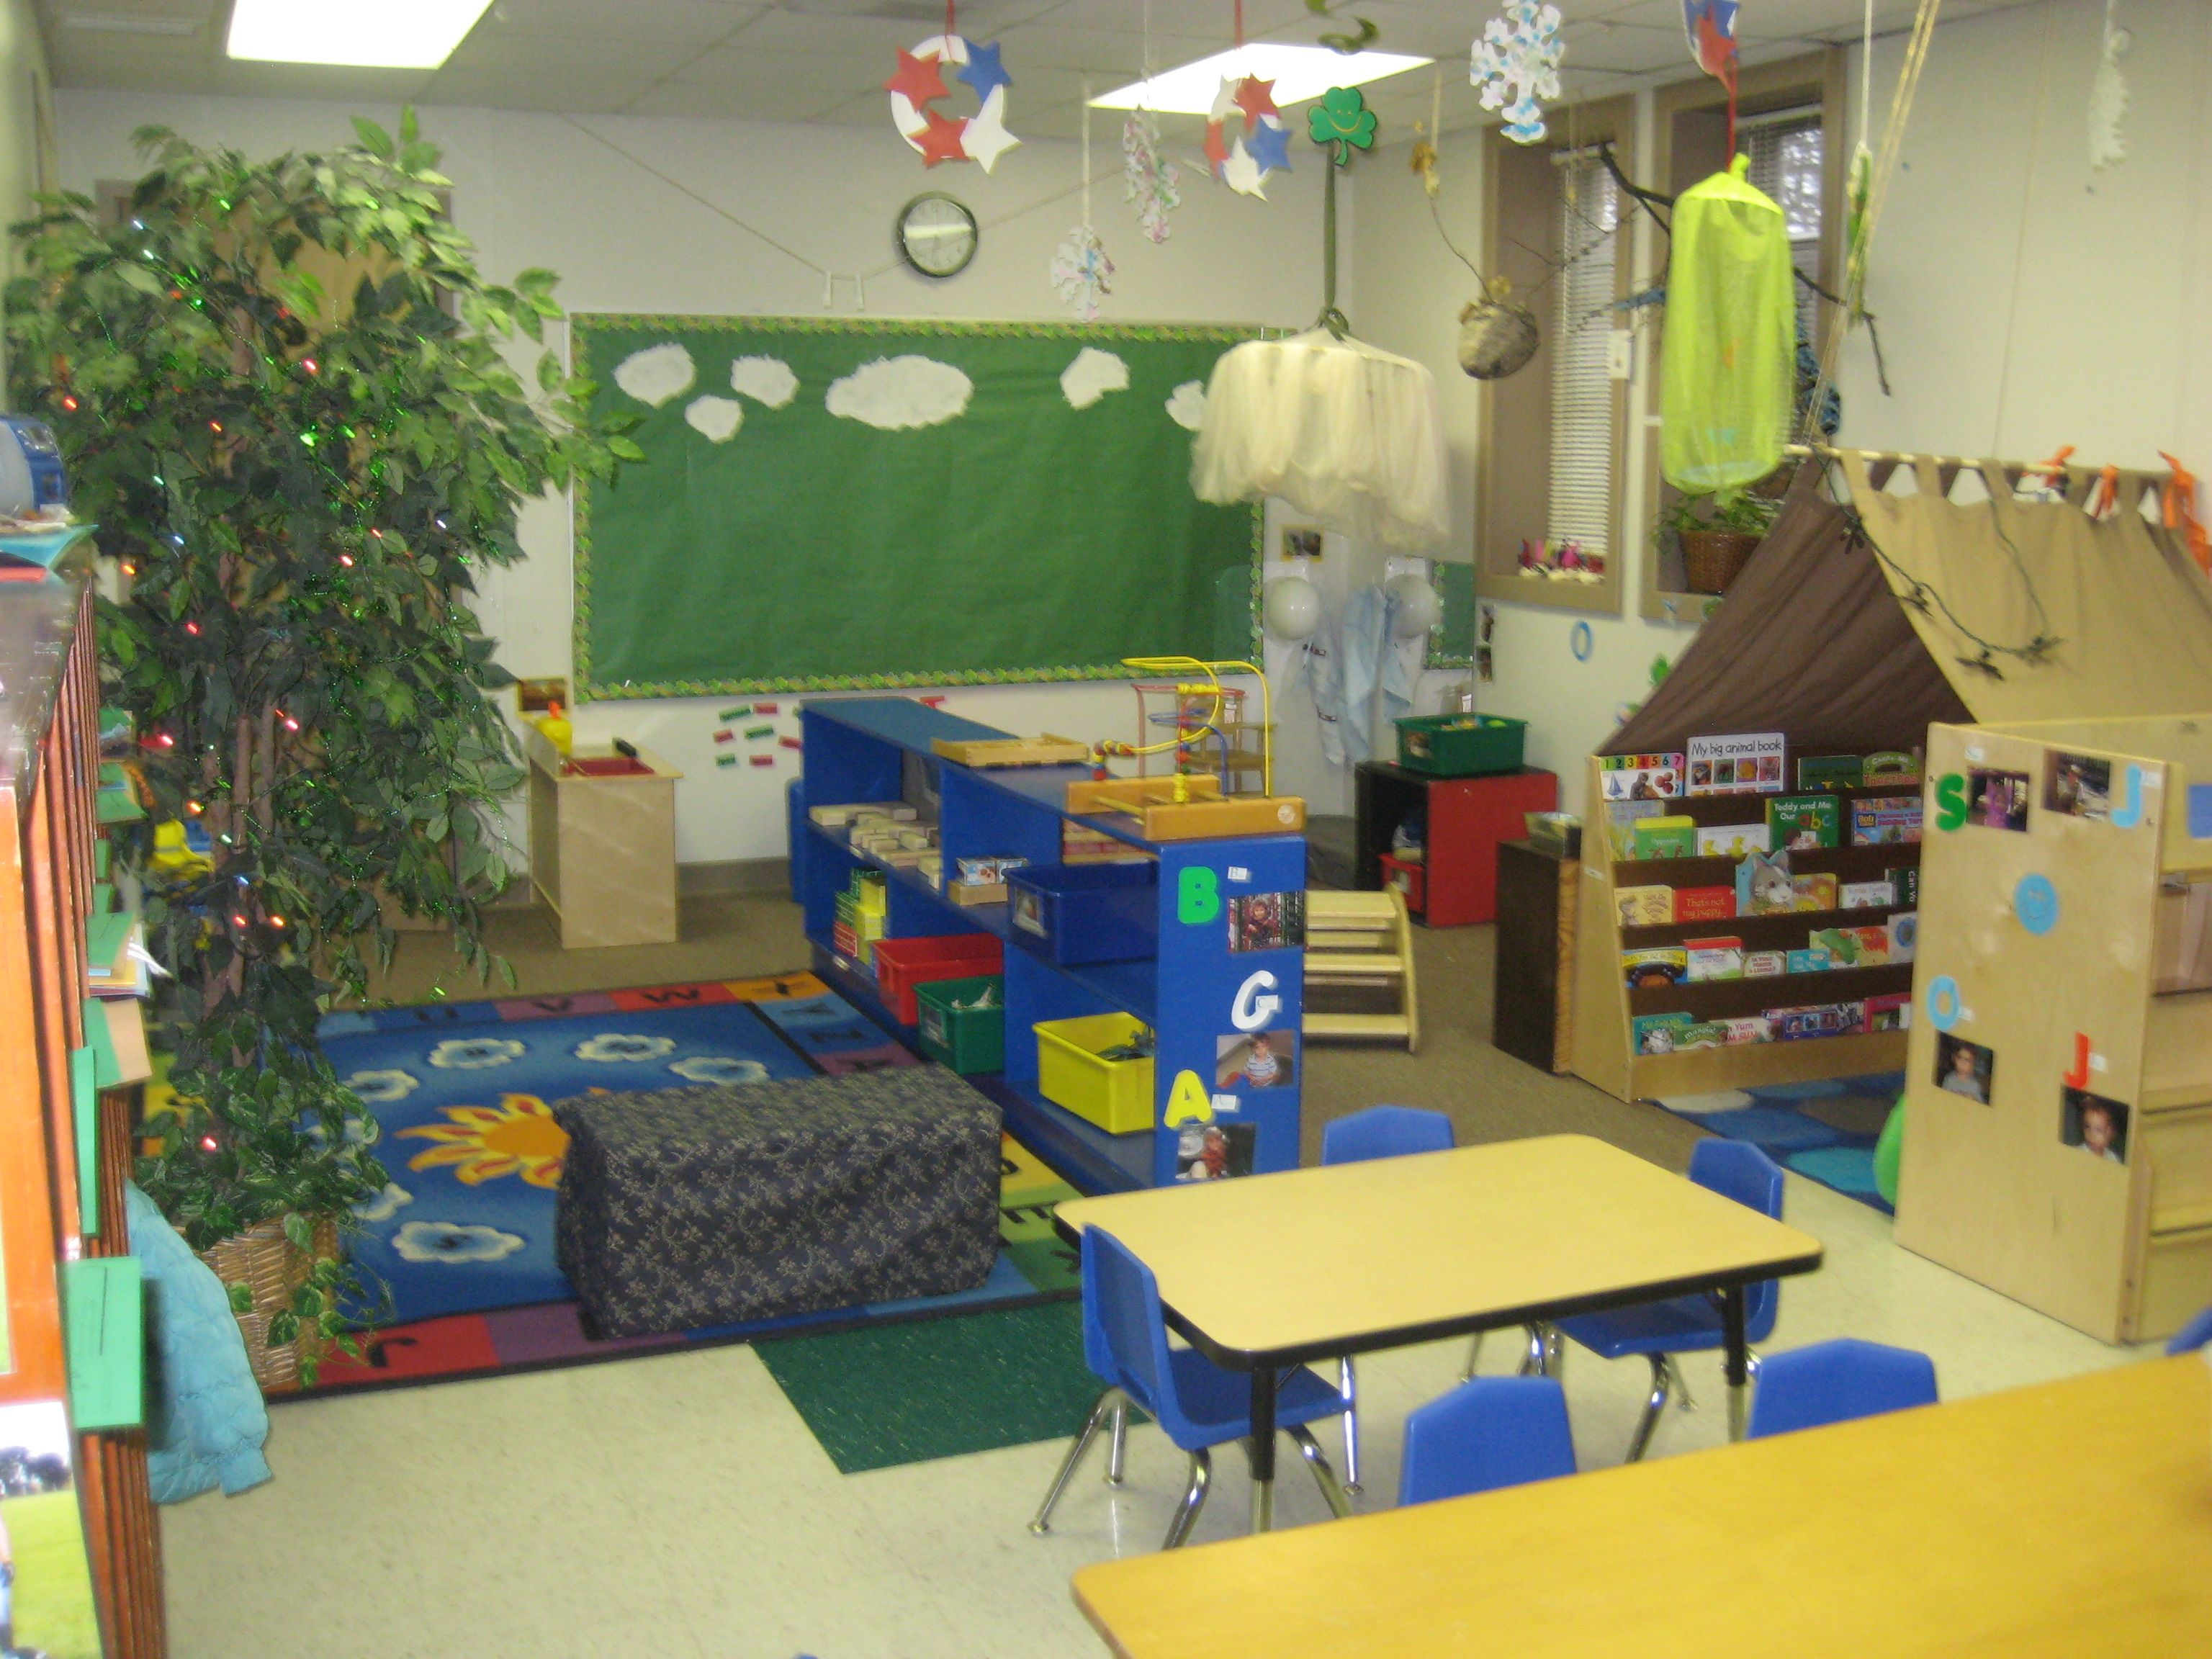 Classroom Ideas For 1 Year Olds : Year old classroom with a variety of age appropriate